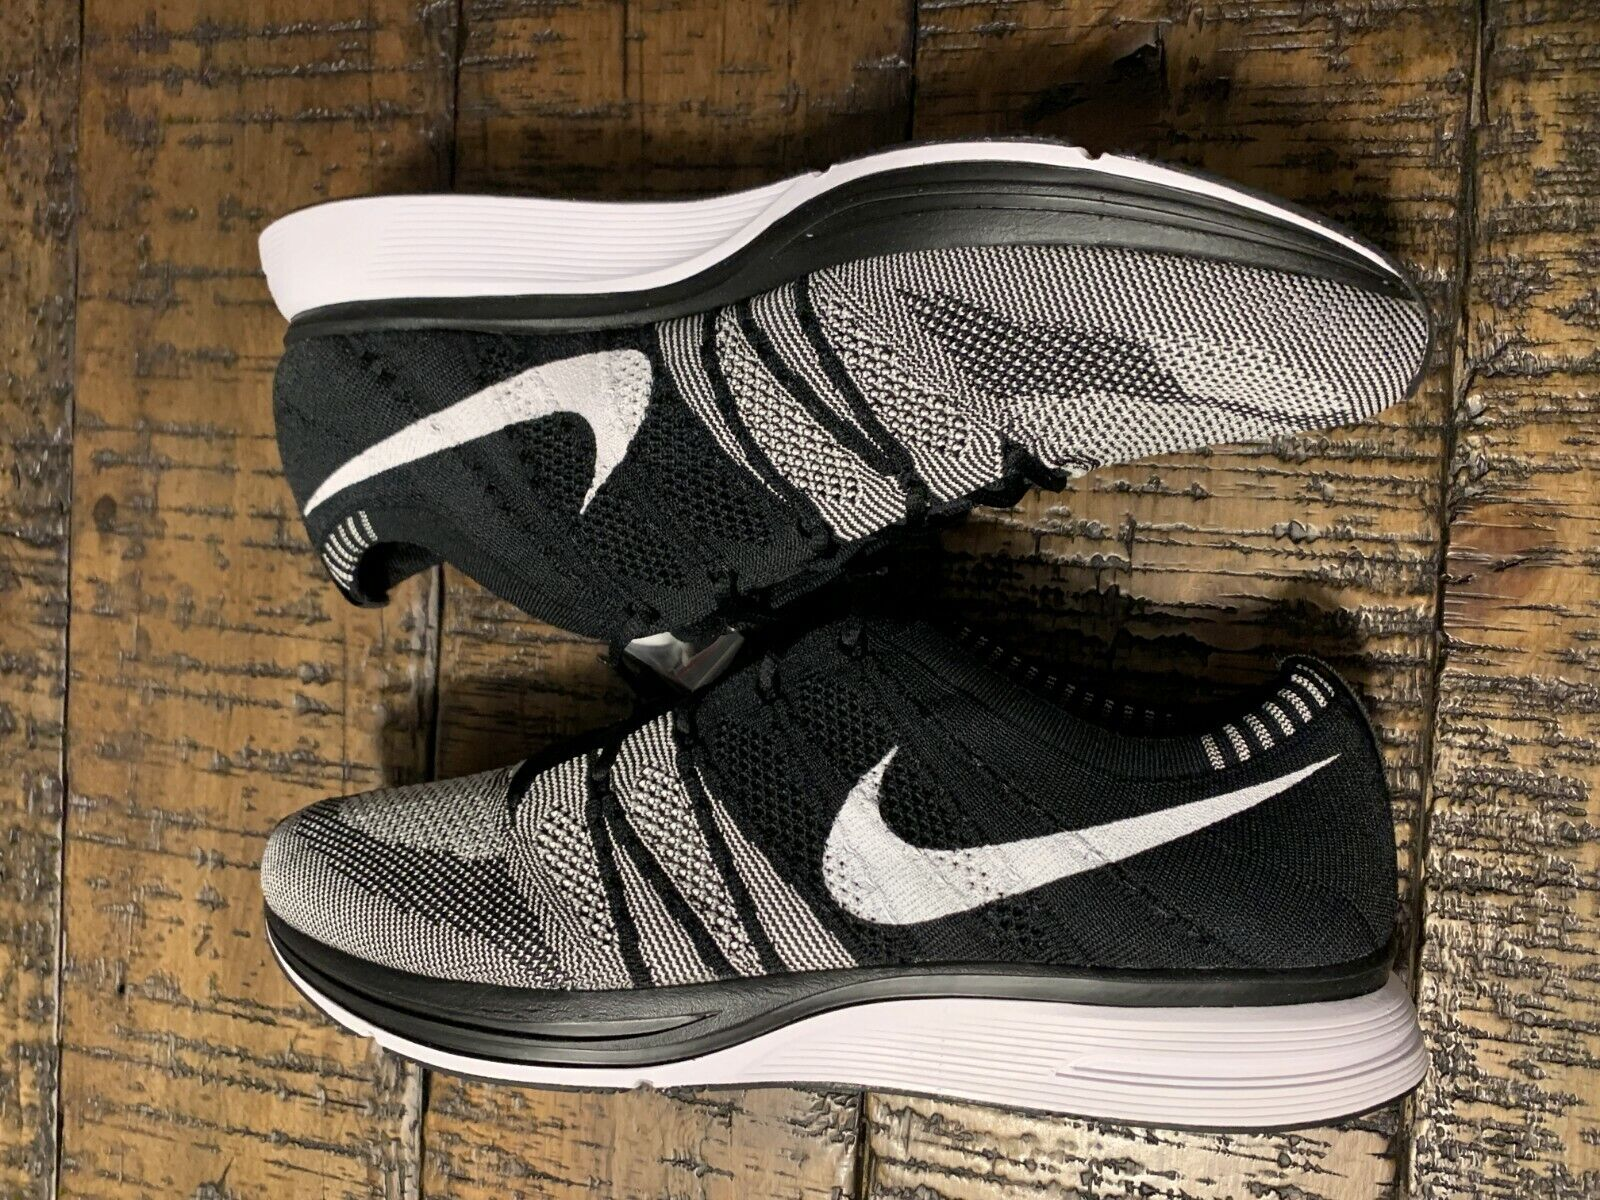 2018 Men's Nike Flyknit Trainer Oreo AH8396-005 Black White Size 11.5